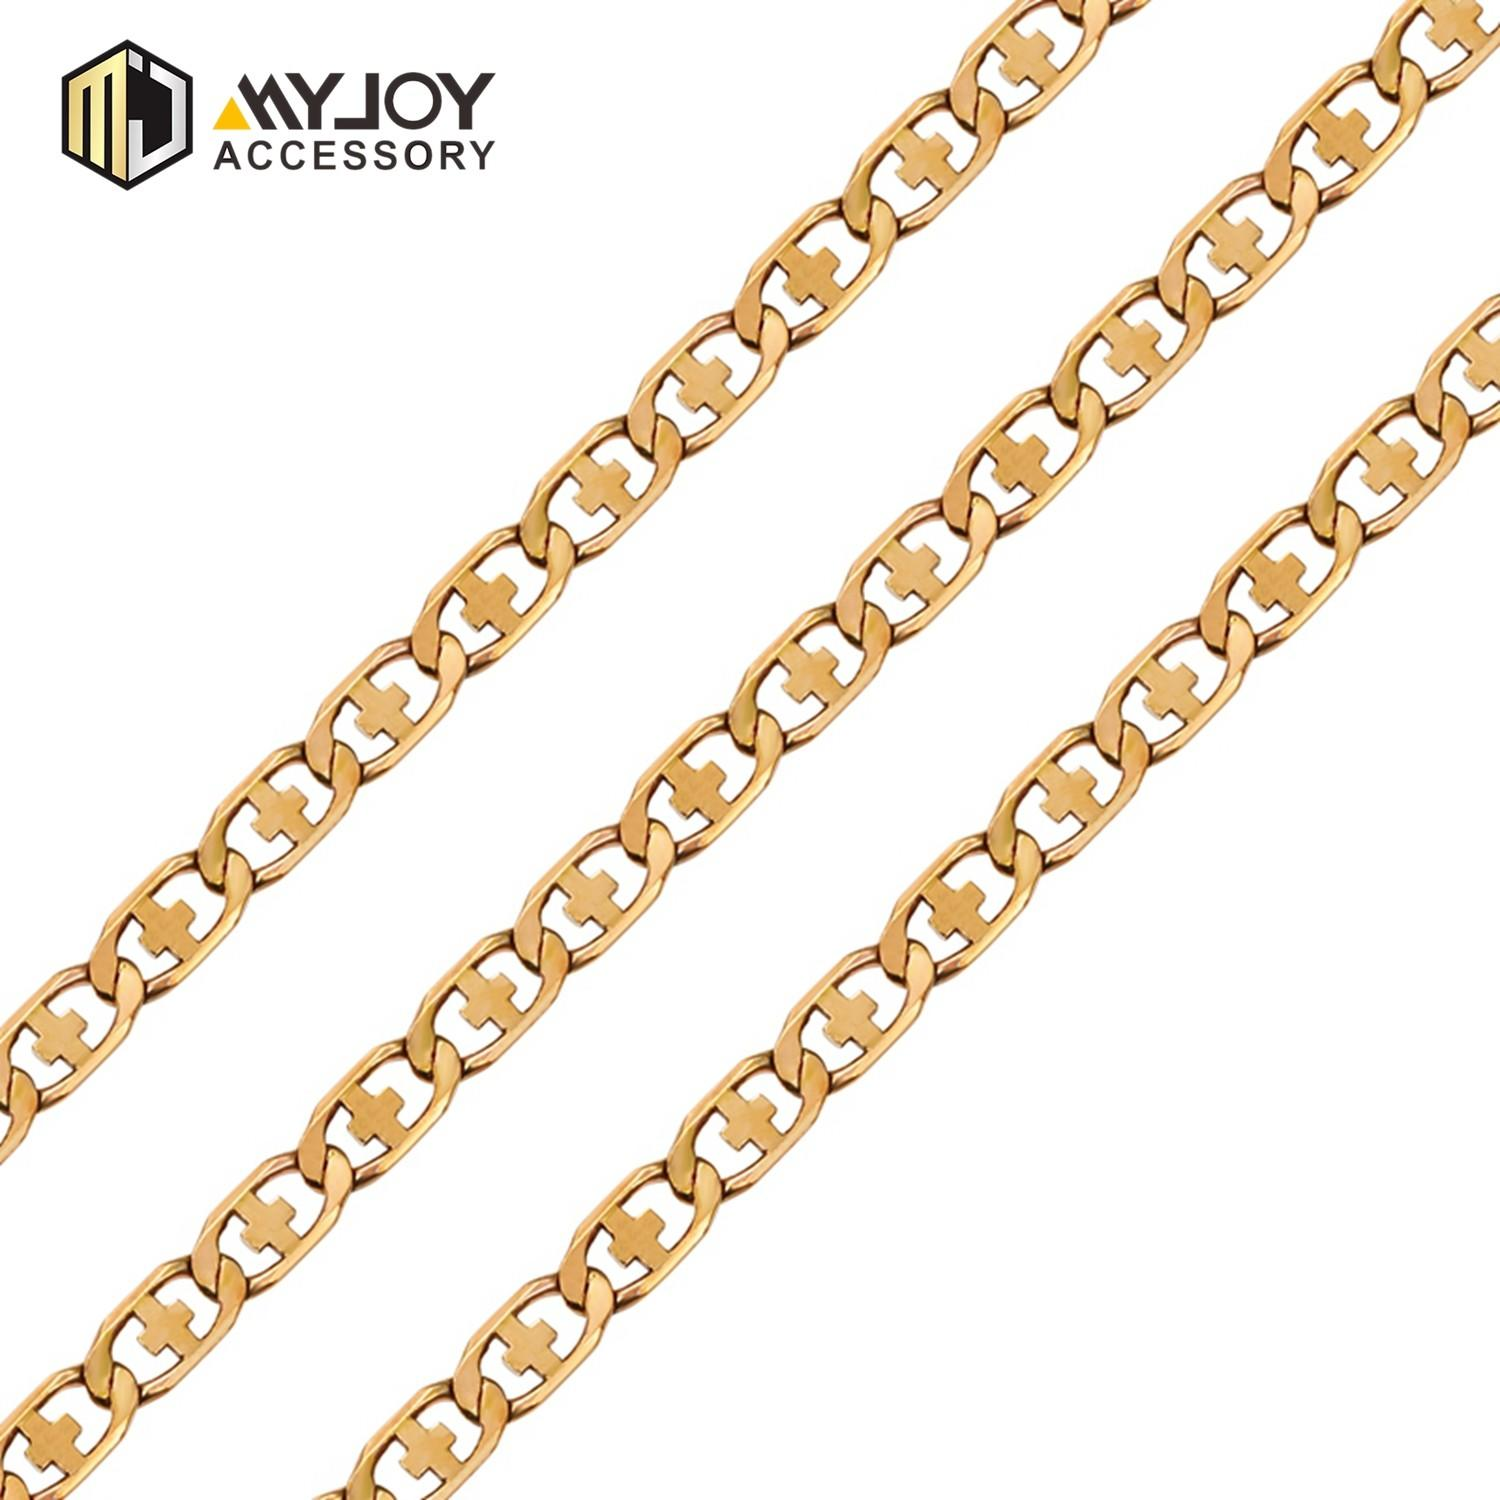 MYJOY New strap chain for sale for purses-3